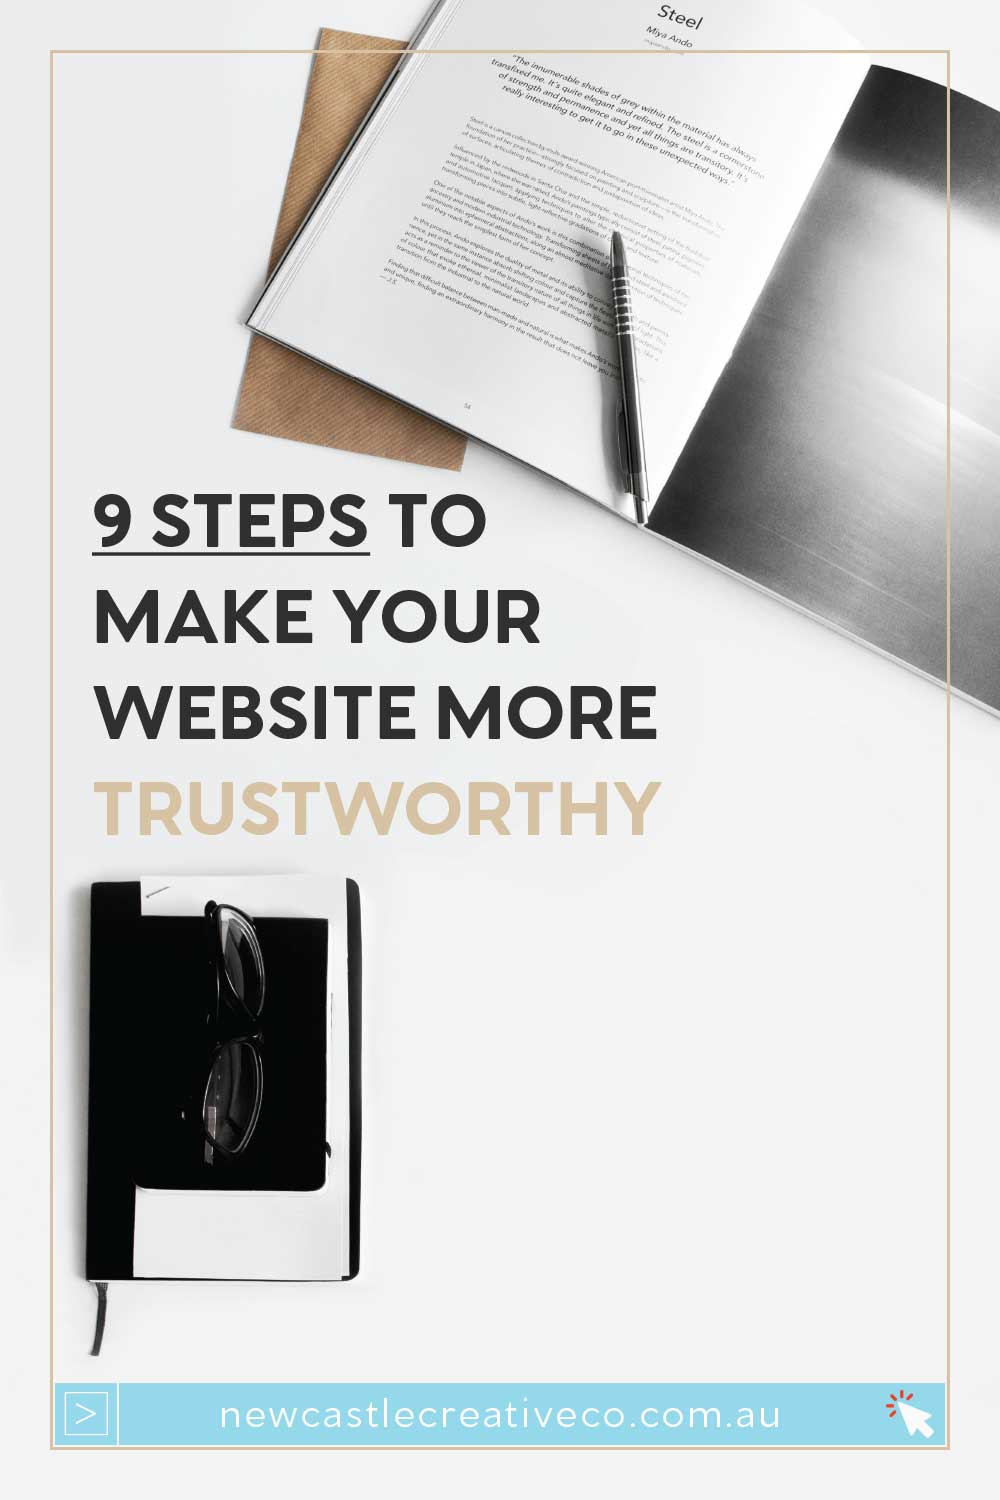 9 Steps to make your website more trustworthy